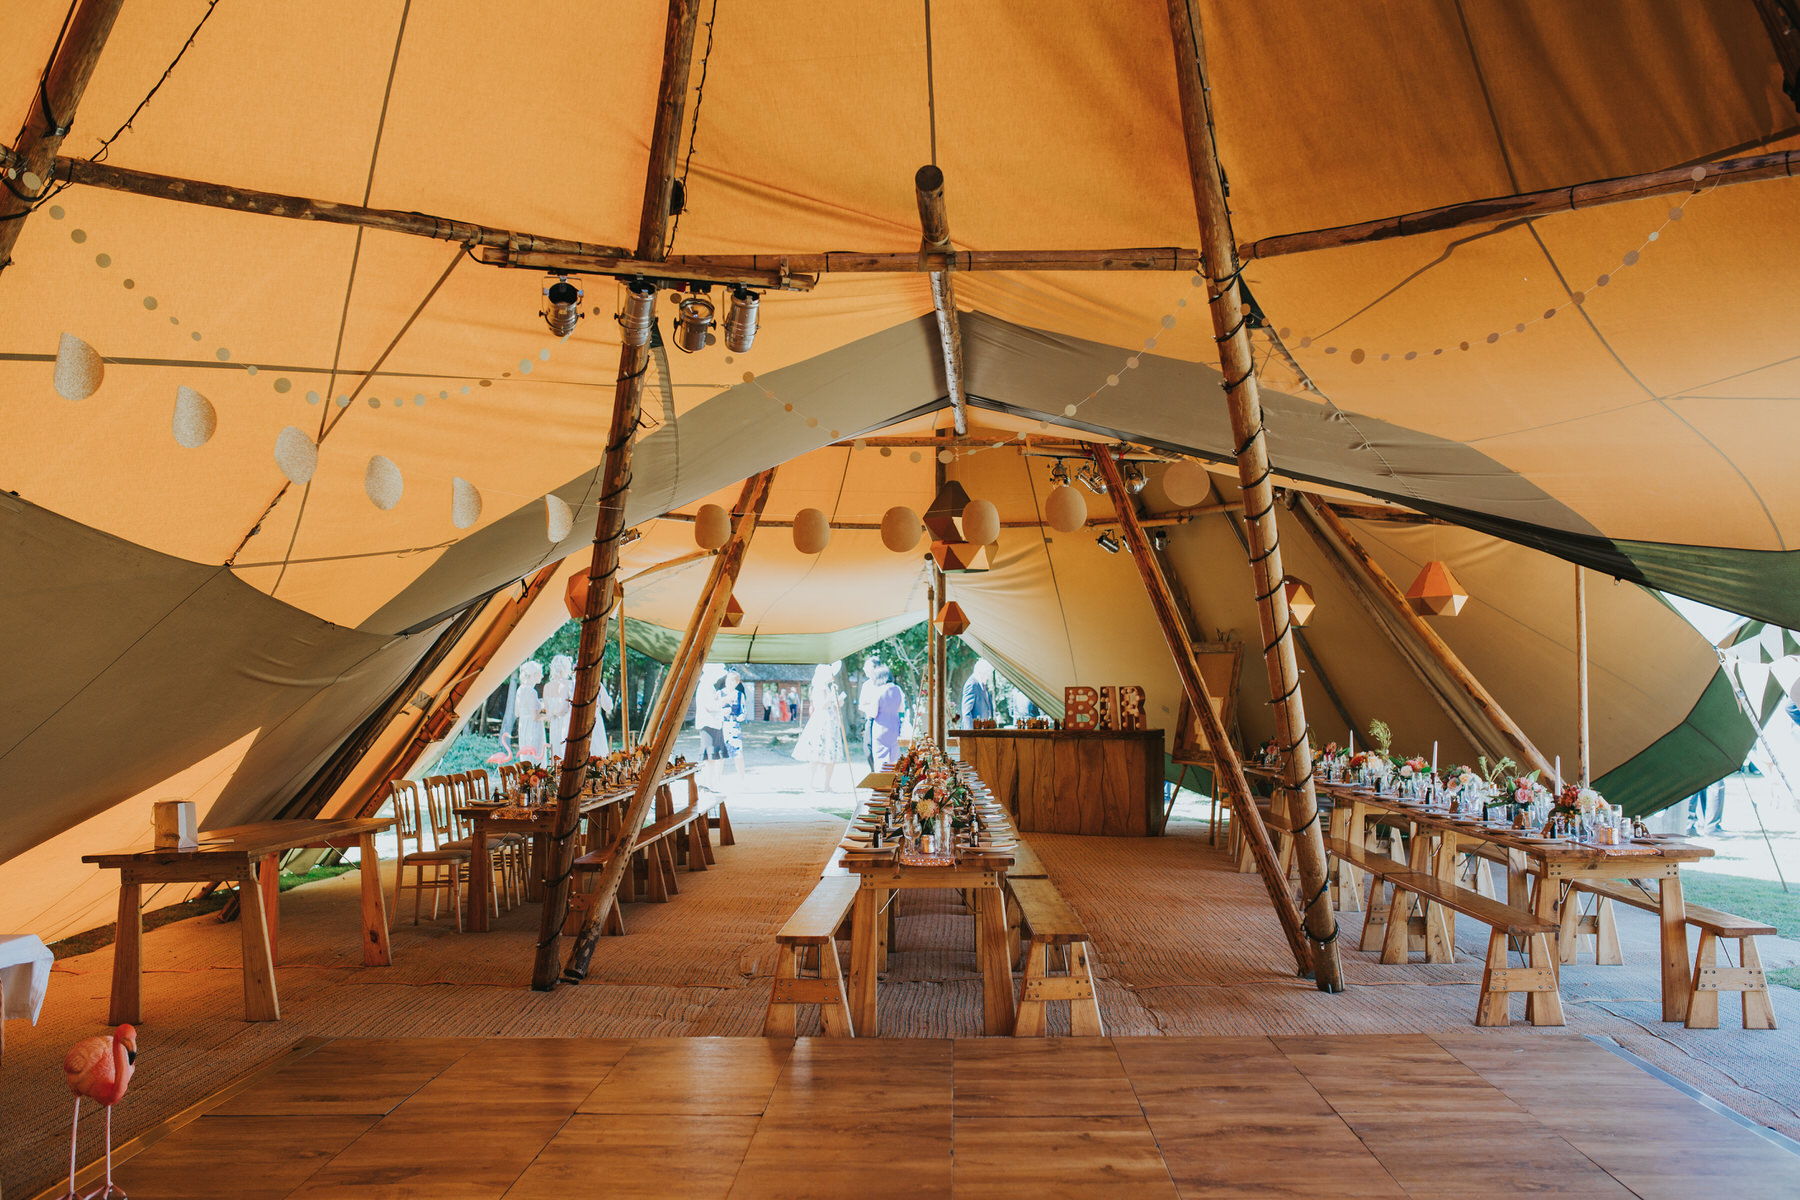 153 gold wedding tipi Knepp Castle reportage wedding photographer.jpg